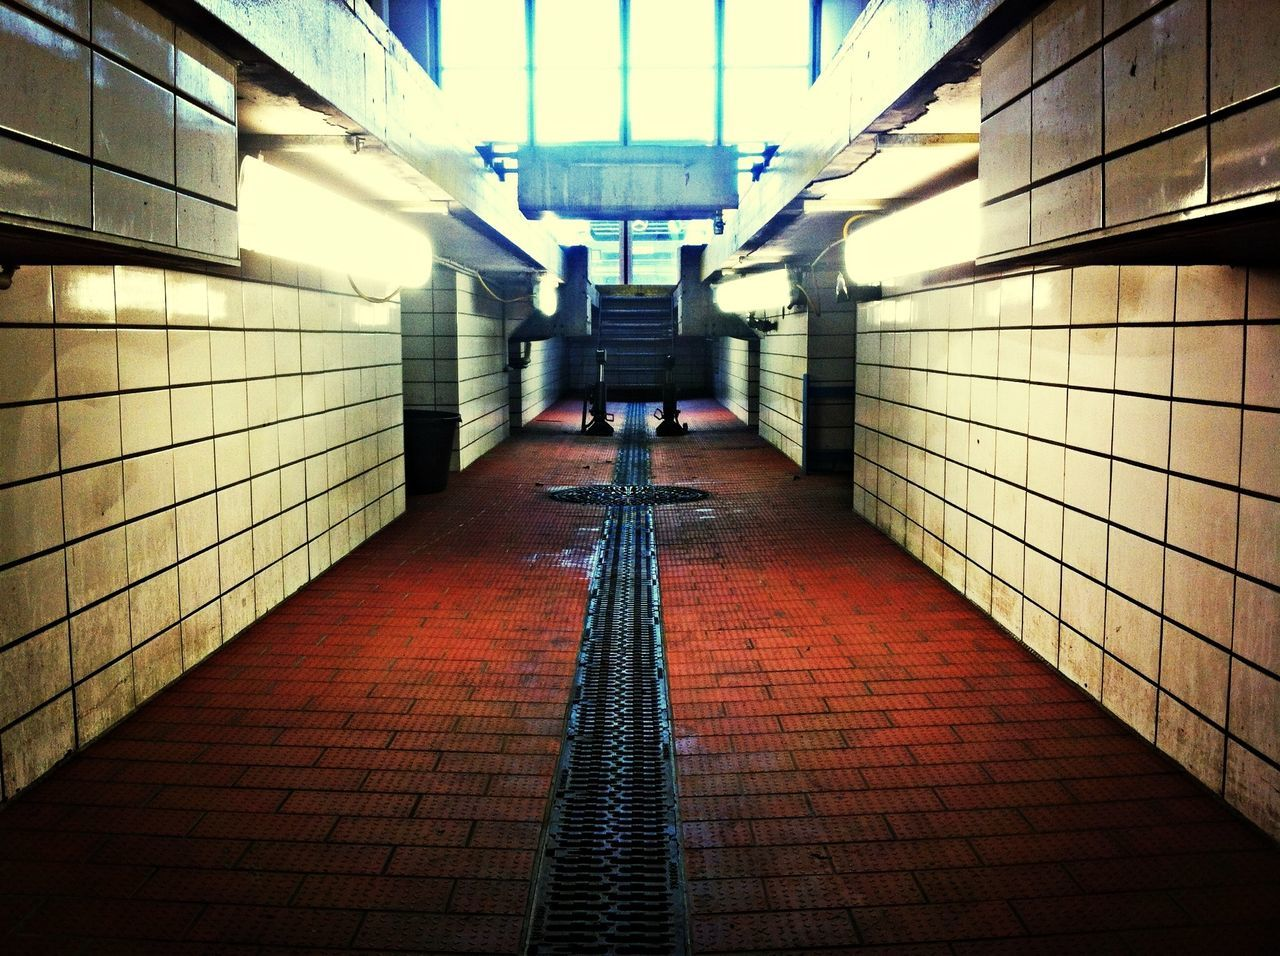 Empty walkway with tiled walls in subway